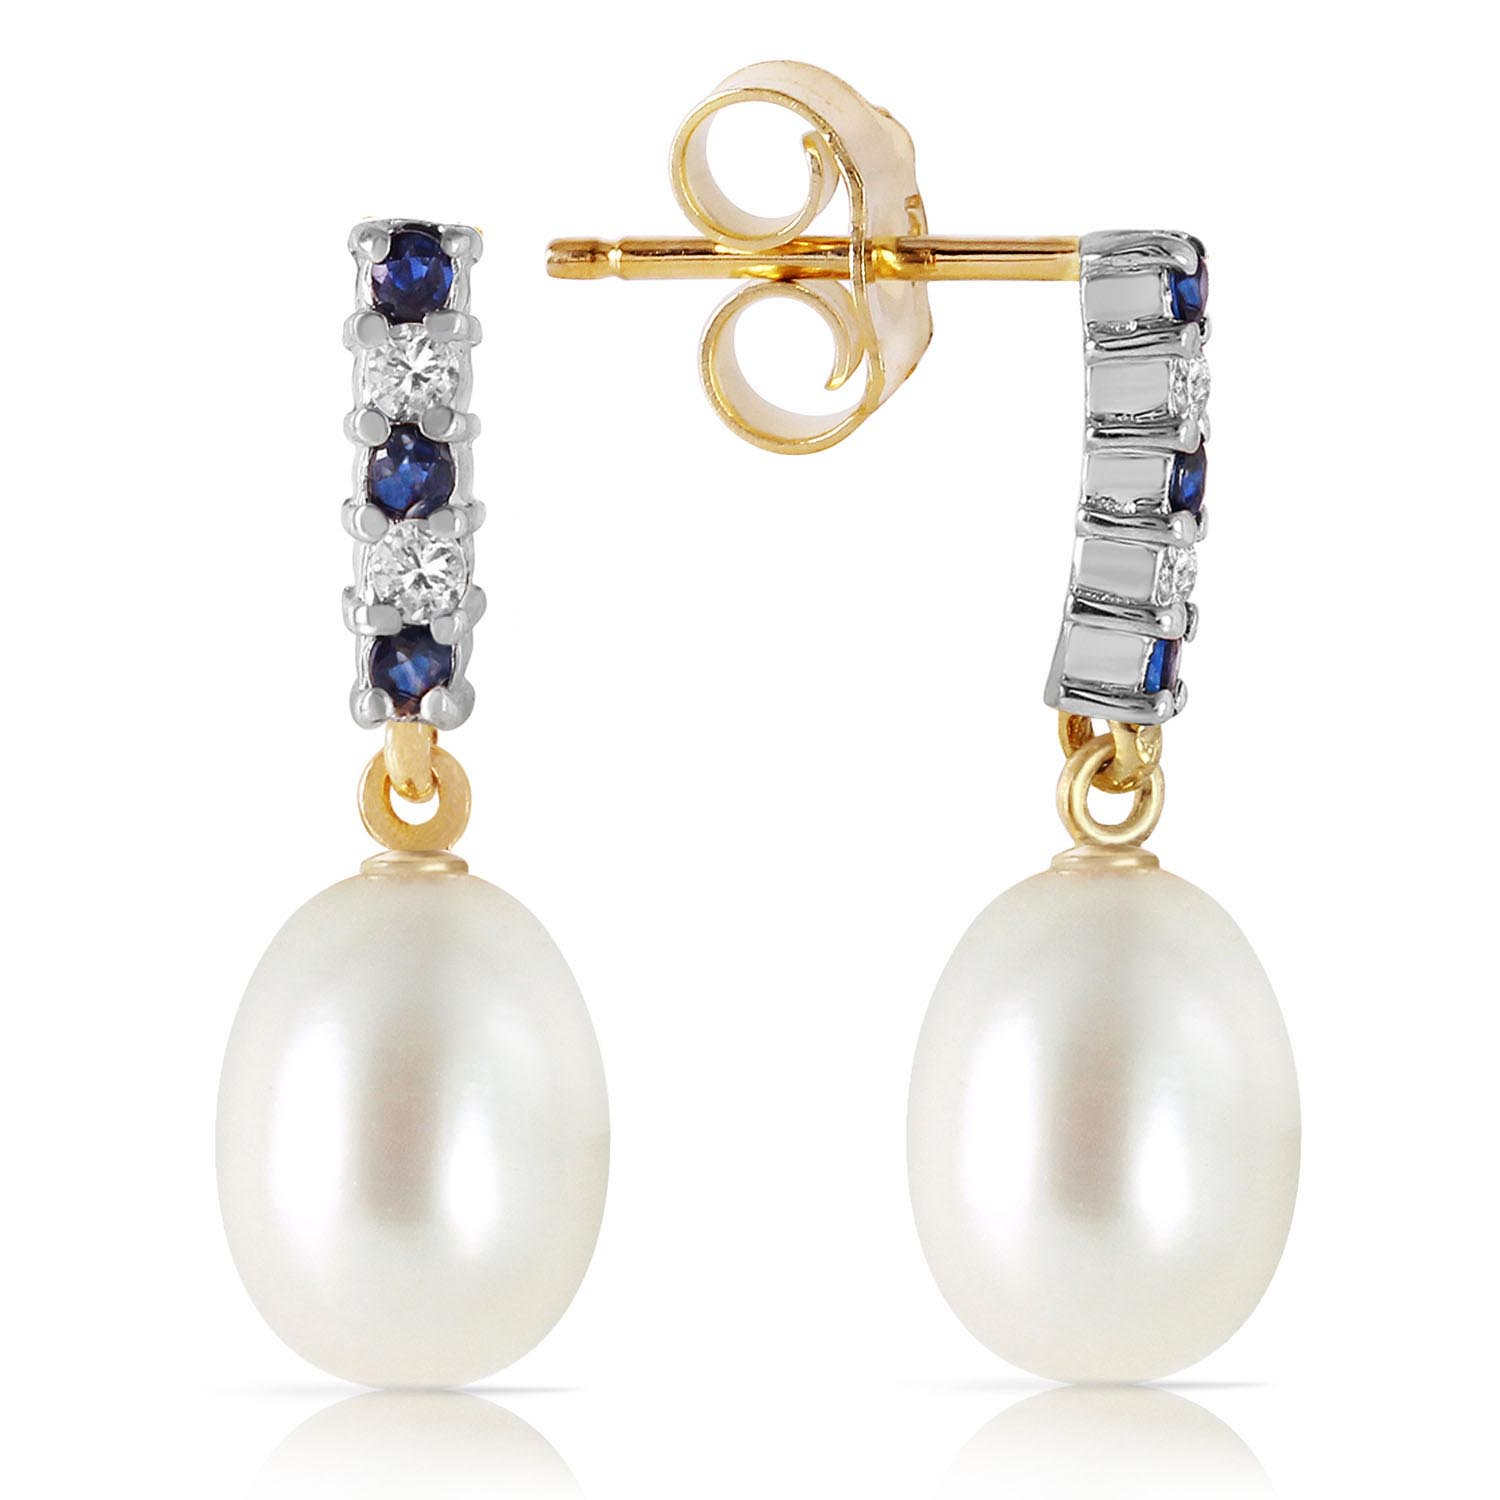 Pearl & Sapphire Stud Earrings in 9ct Gold